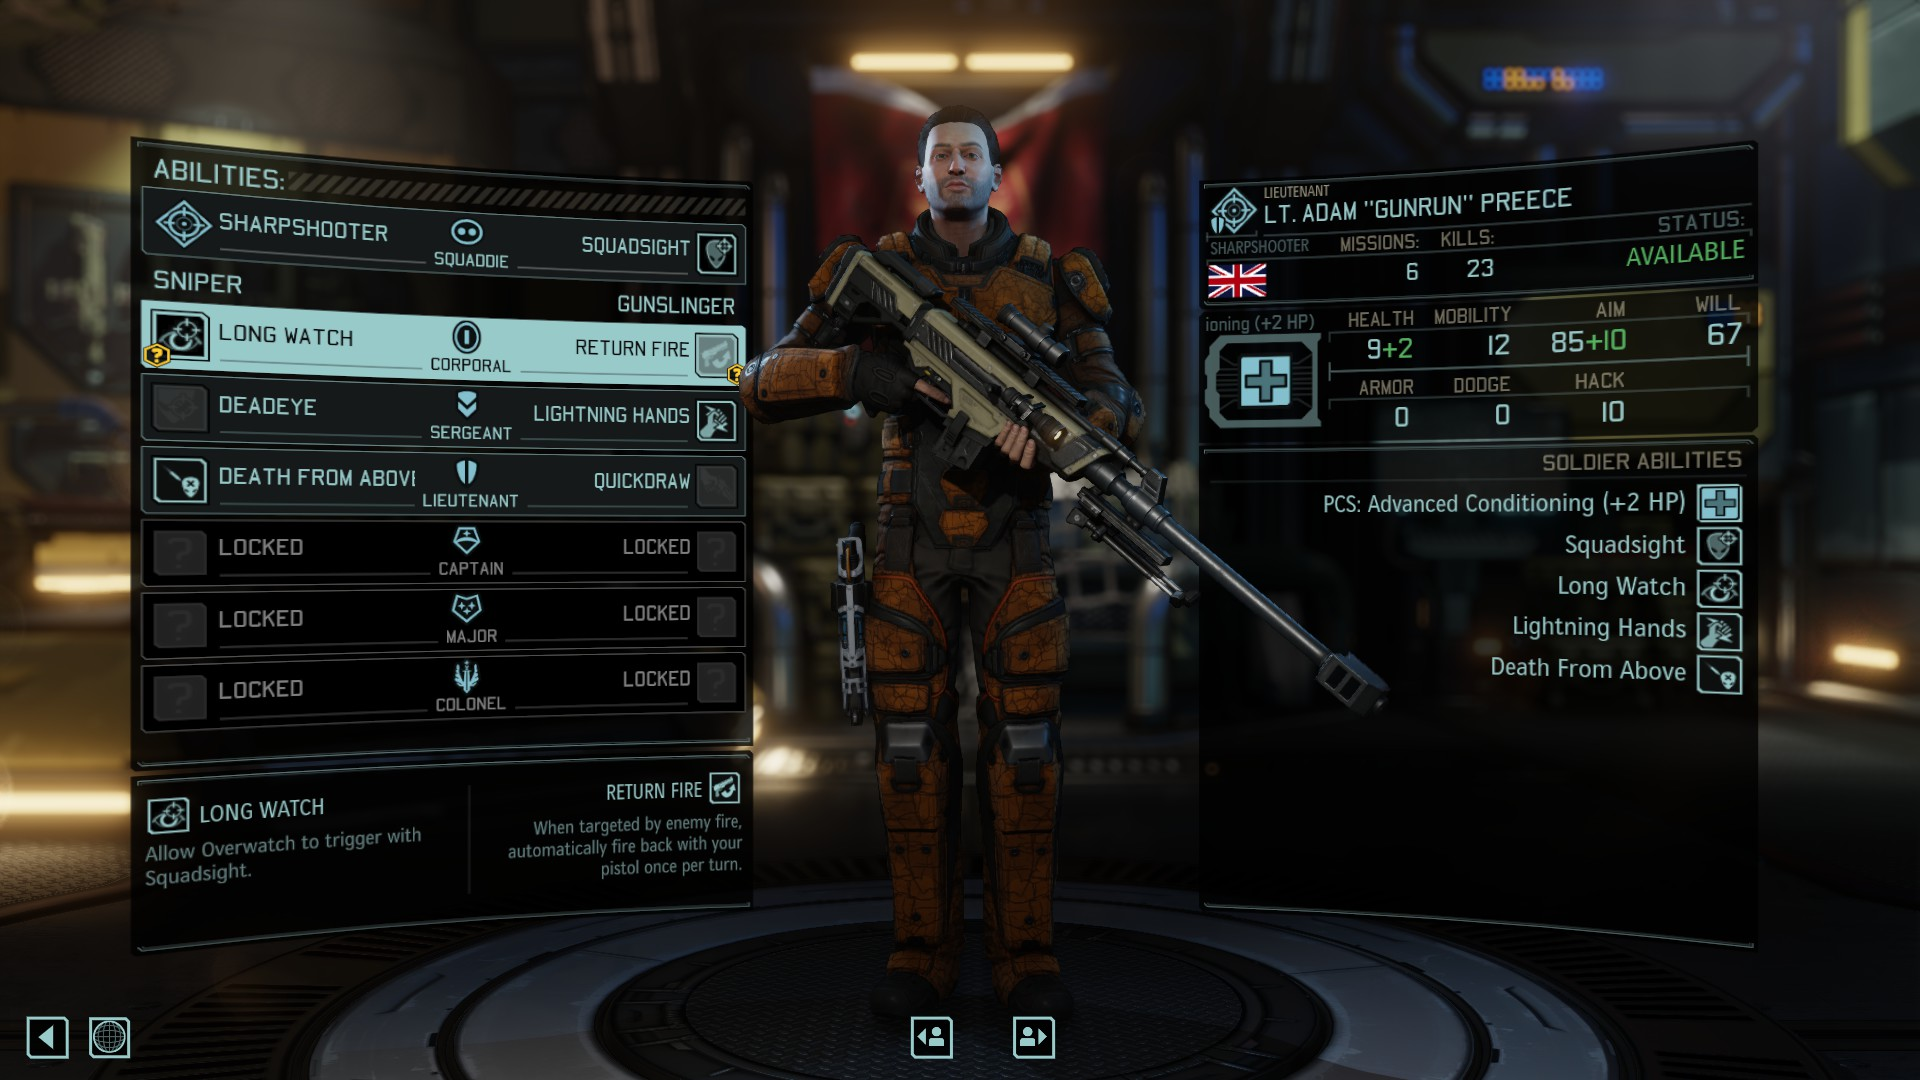 xcom 2 guide the best autopsies abilities and gear vg247